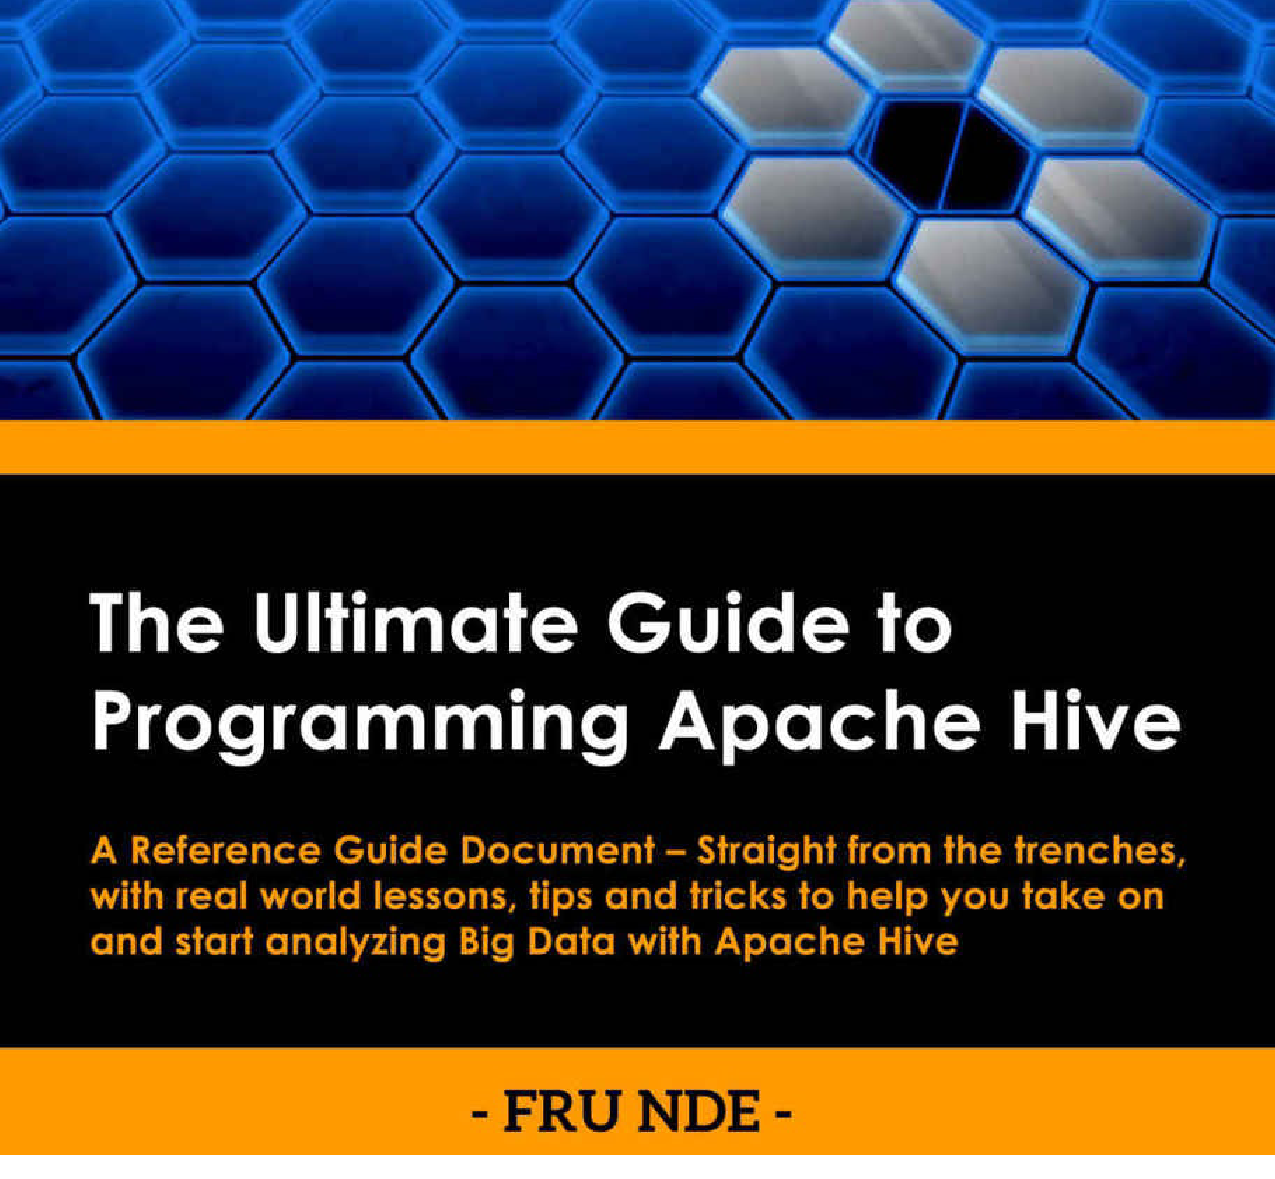 The Ultimate Guide To Programming Apache Hive: A Reference